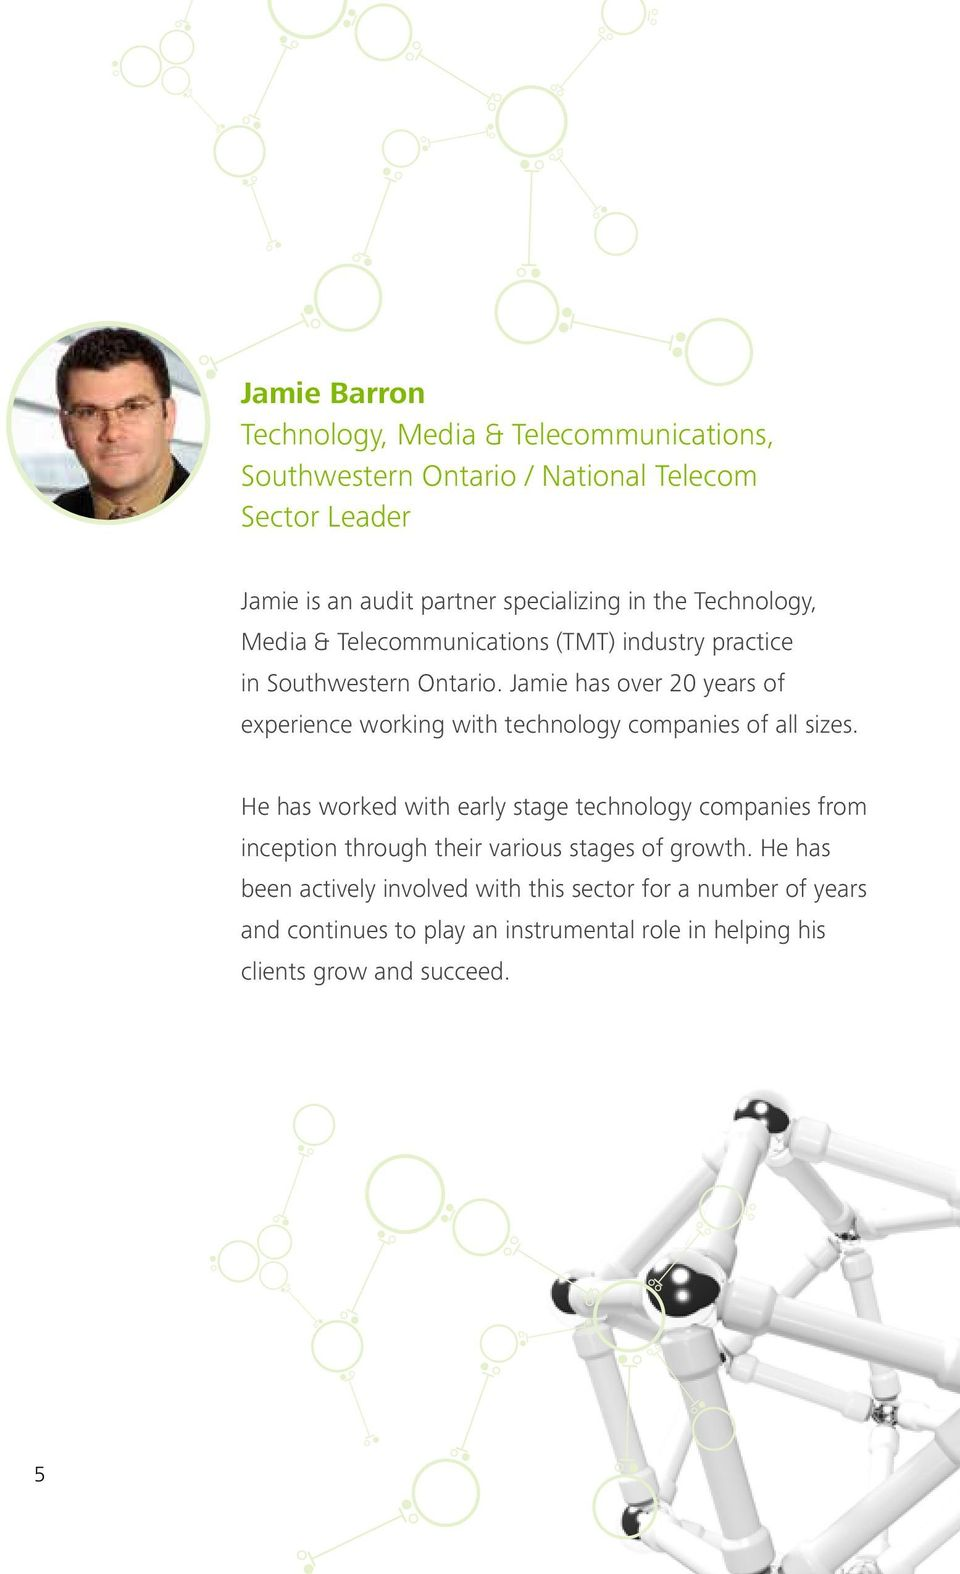 Jamie has over 20 years of experience working with technology companies of all sizes.